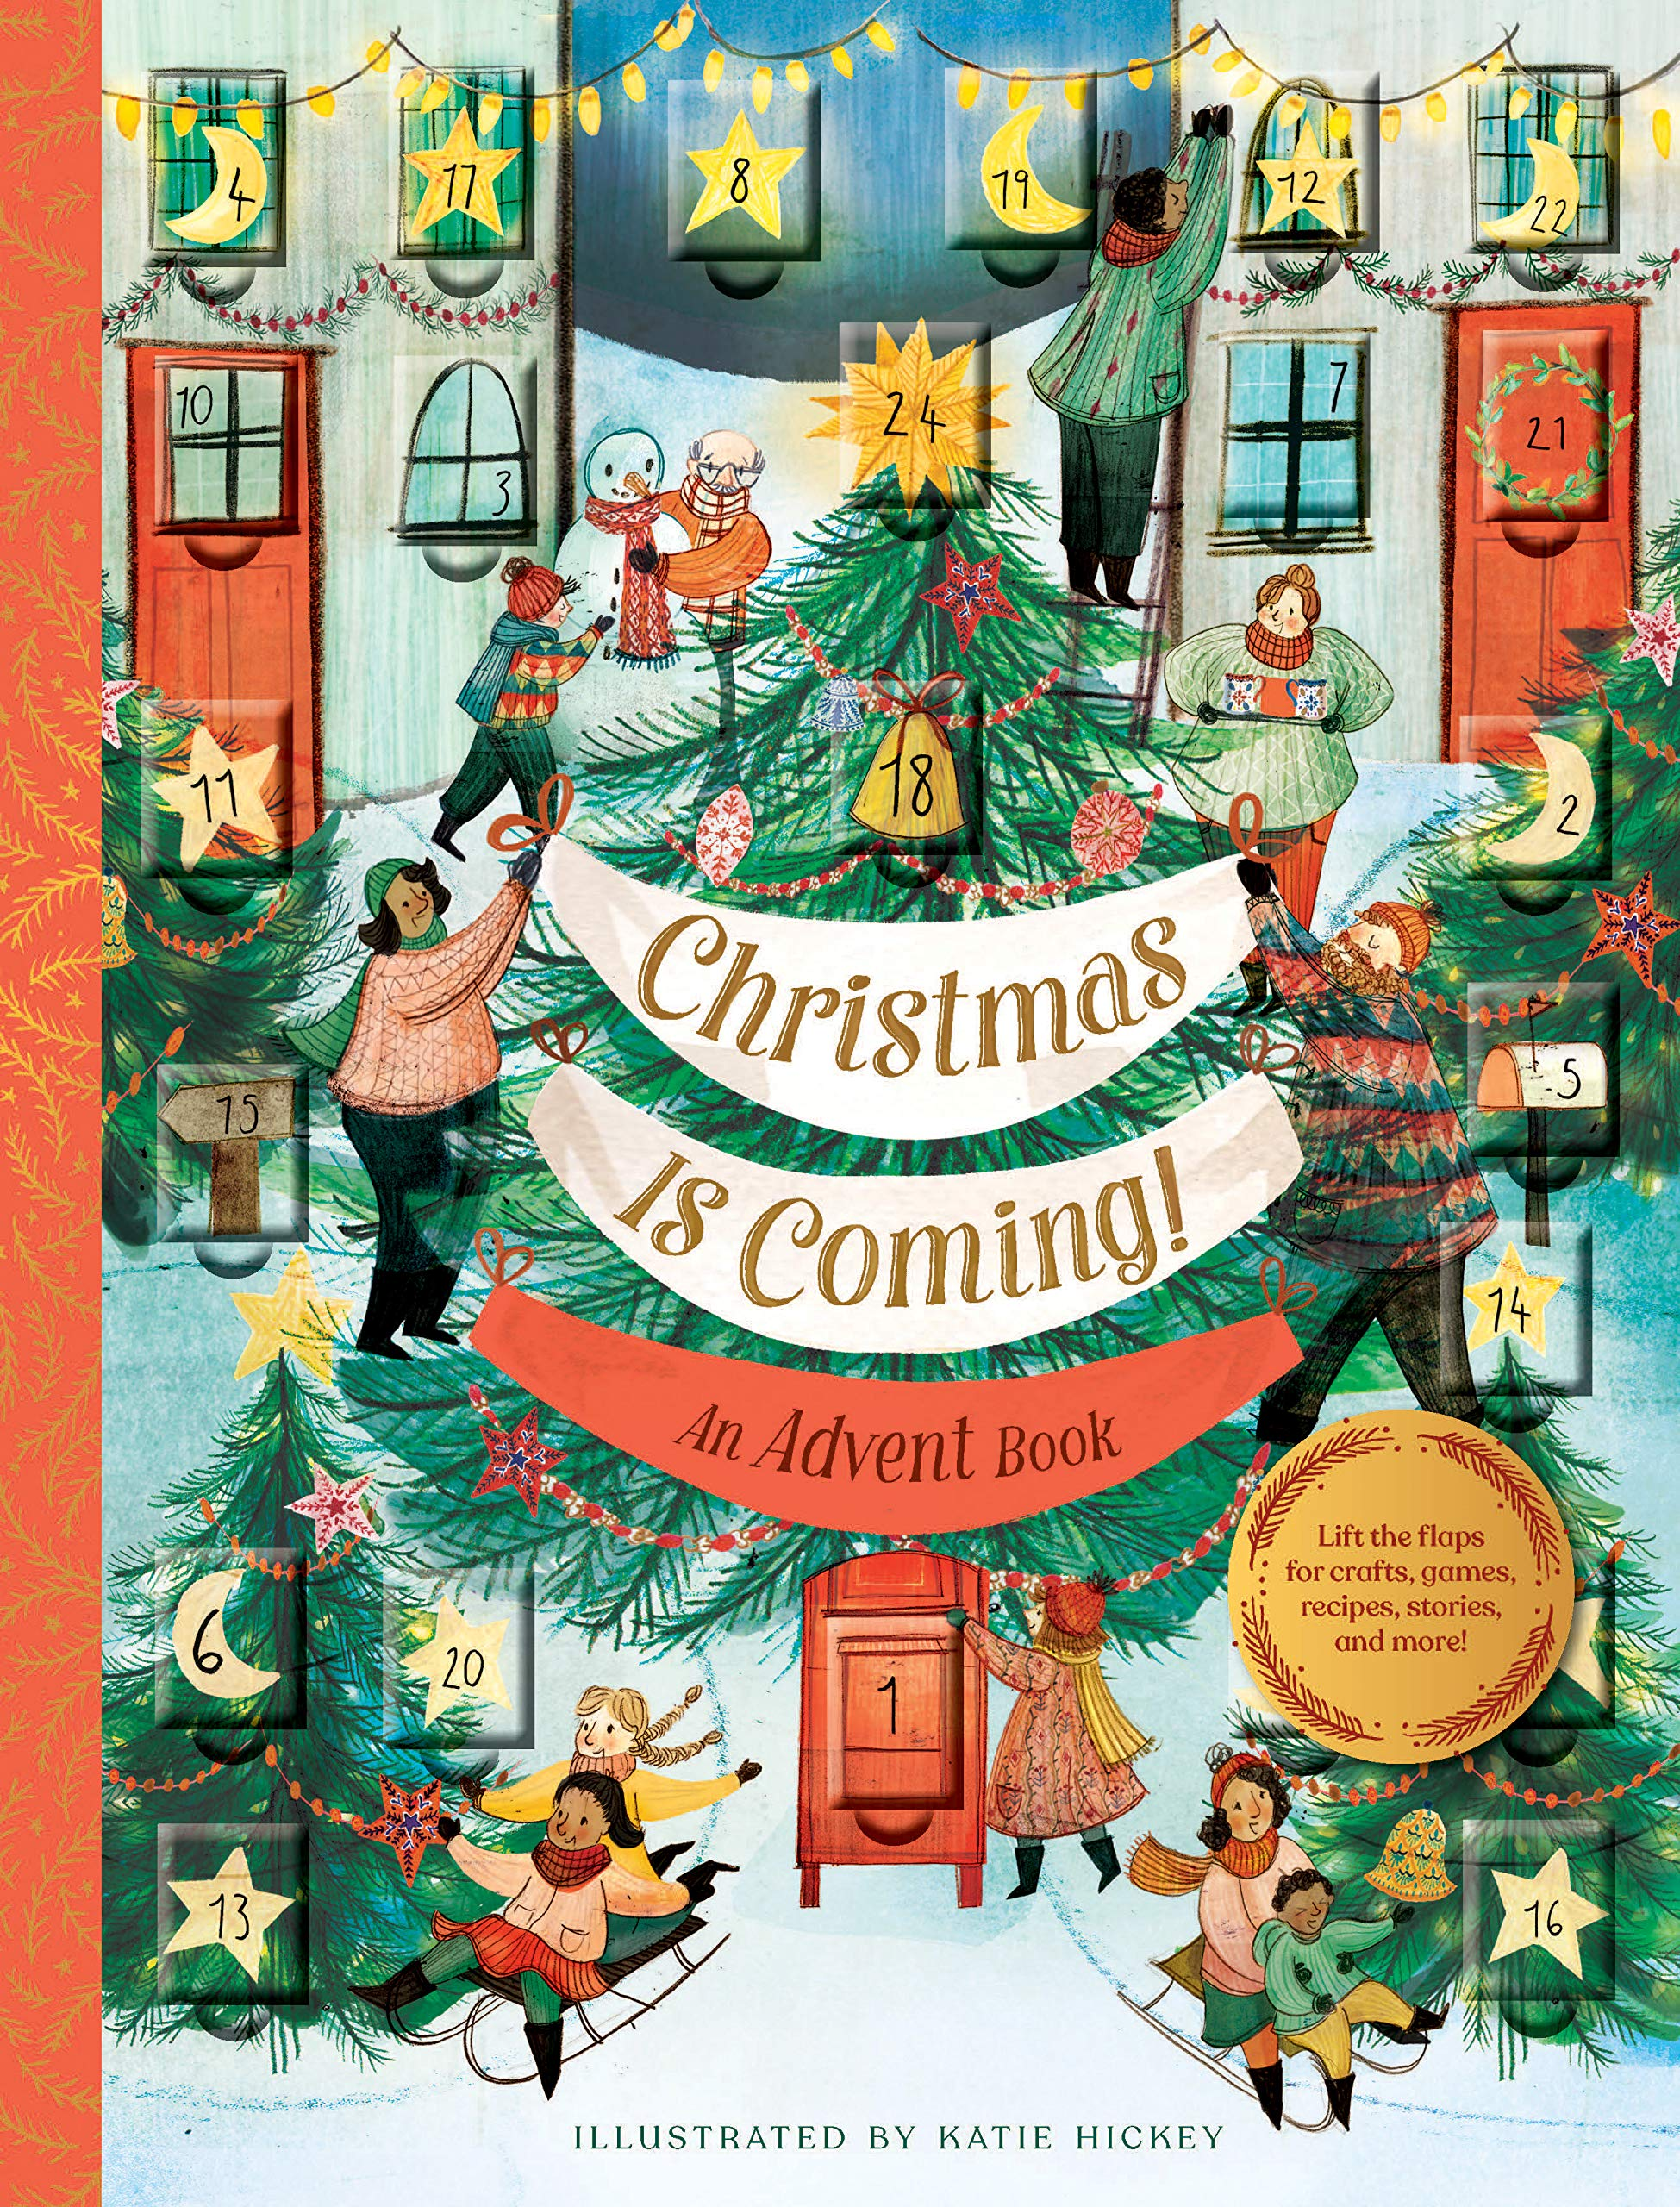 Book - Christmas is Coming: An Advent Book